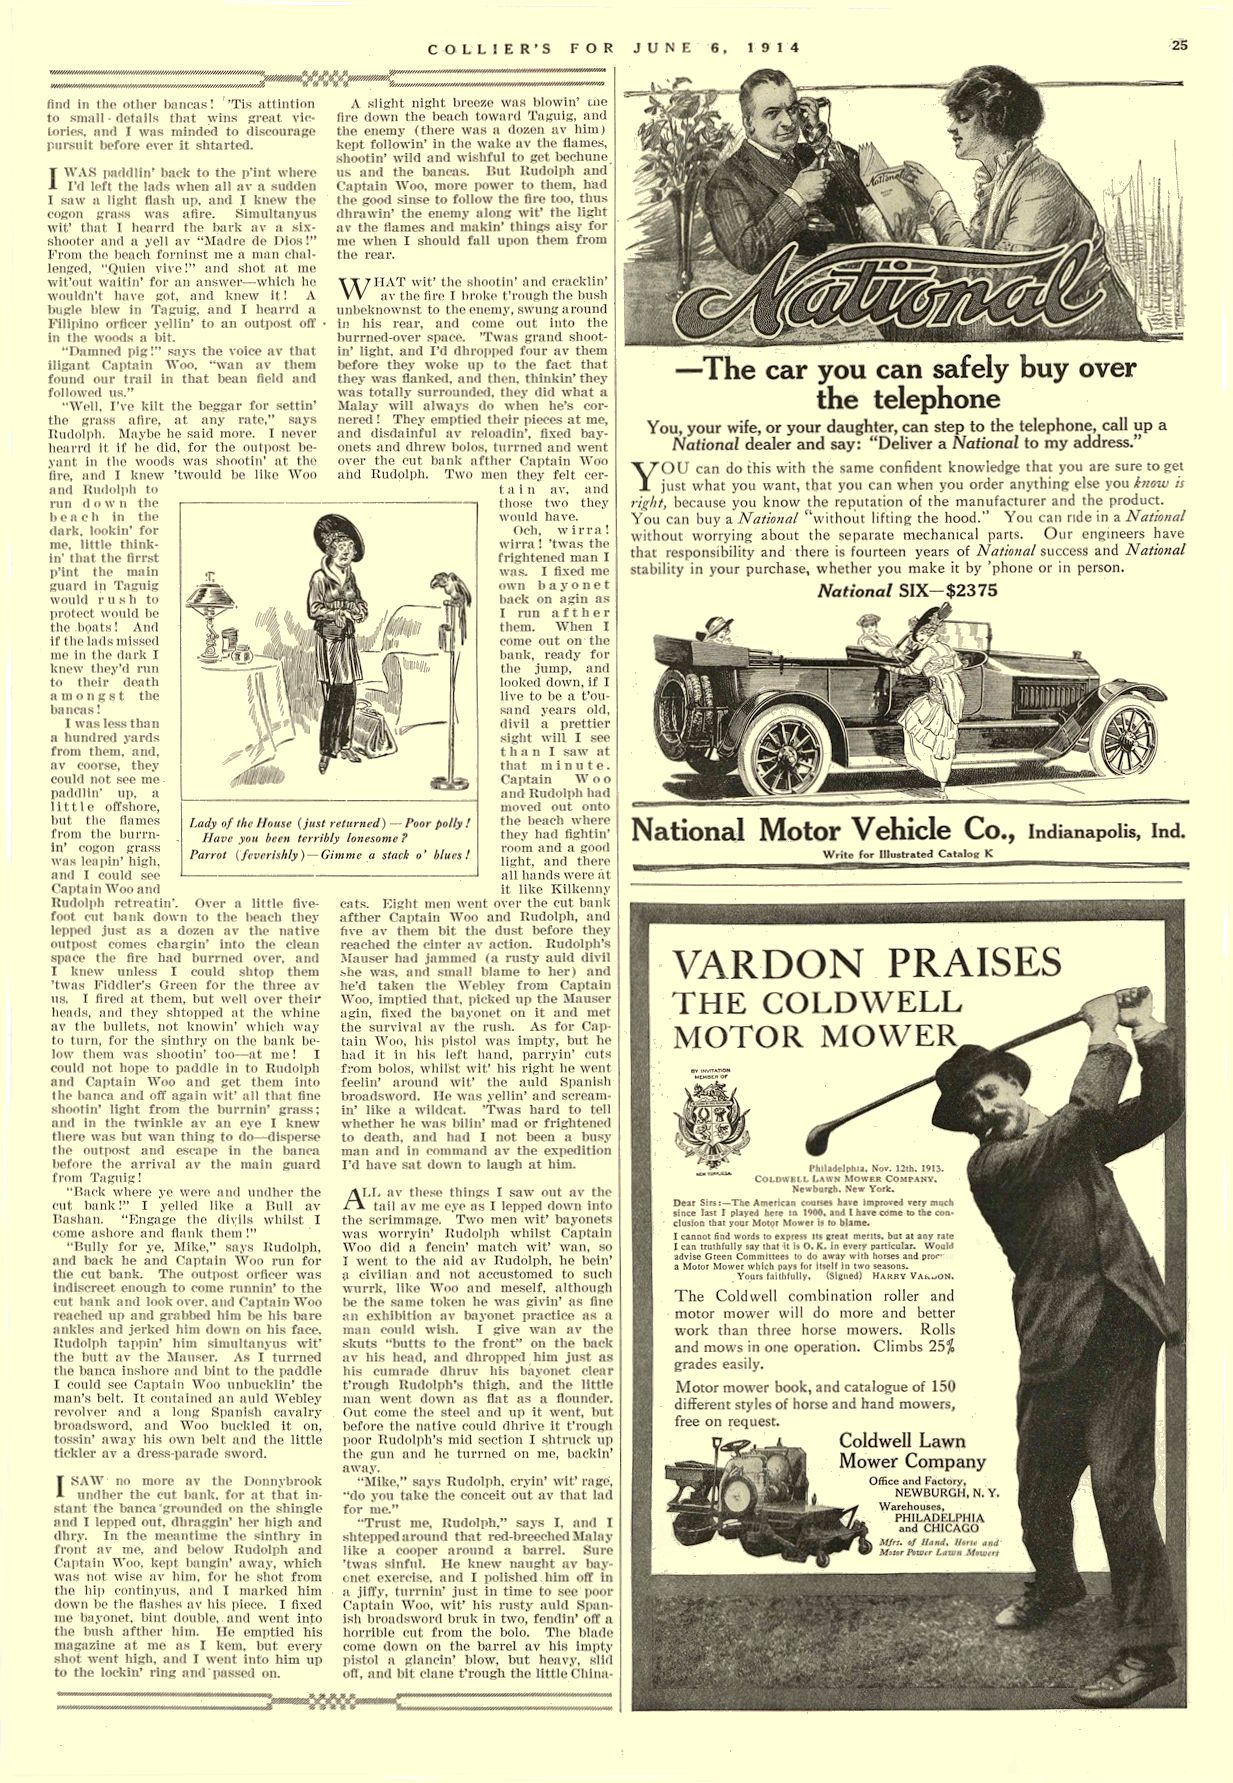 1914 6 6 NATIONAL — the car you can safely buy over the telephone National Motor Vehicle Co. Indianapolis, IND COLLIER'S June 6, 1914 10″x14.75″ page 25